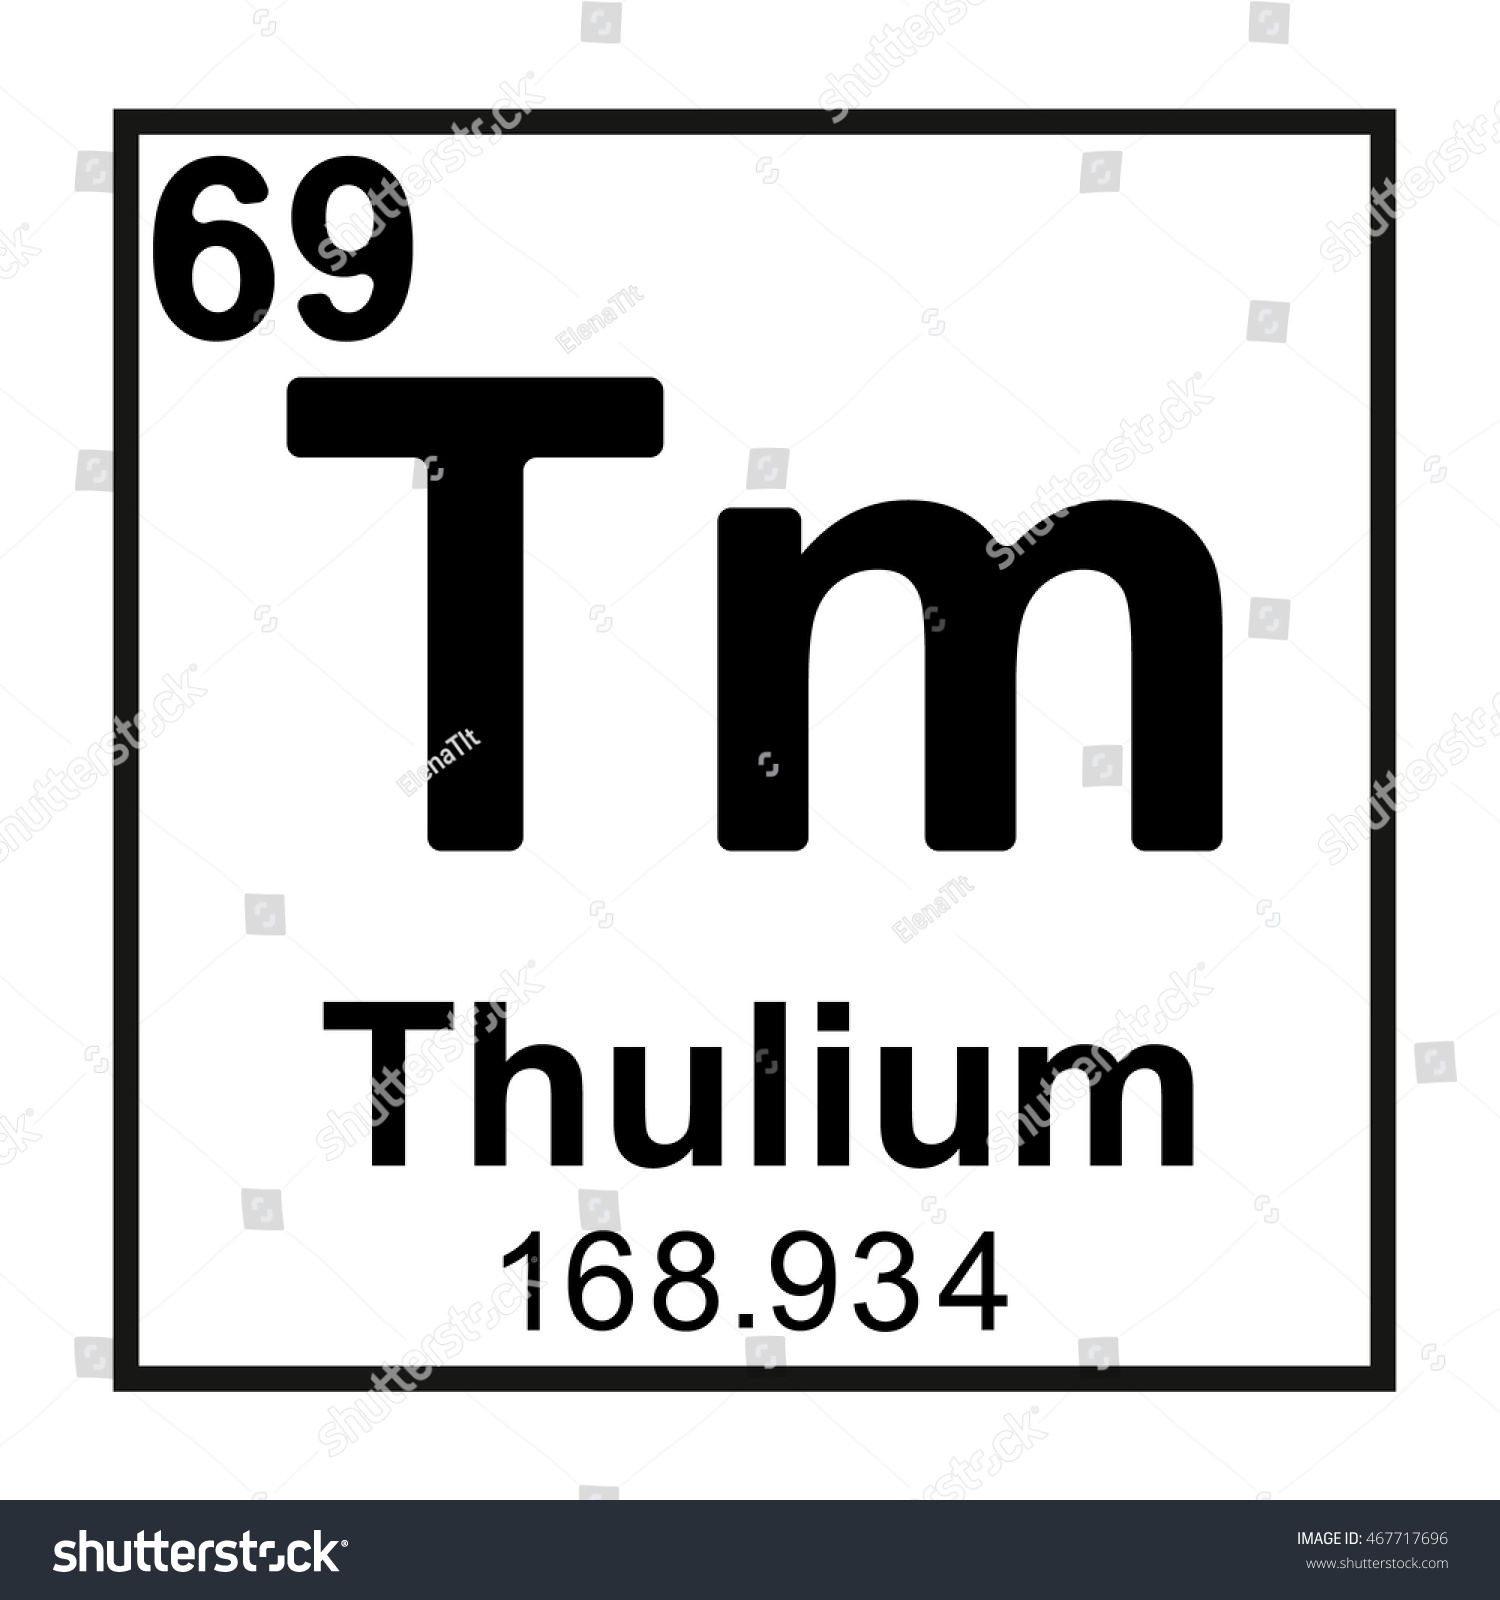 Periodic table element thulium stock vector 467717696 shutterstock periodic table element thulium gamestrikefo Gallery